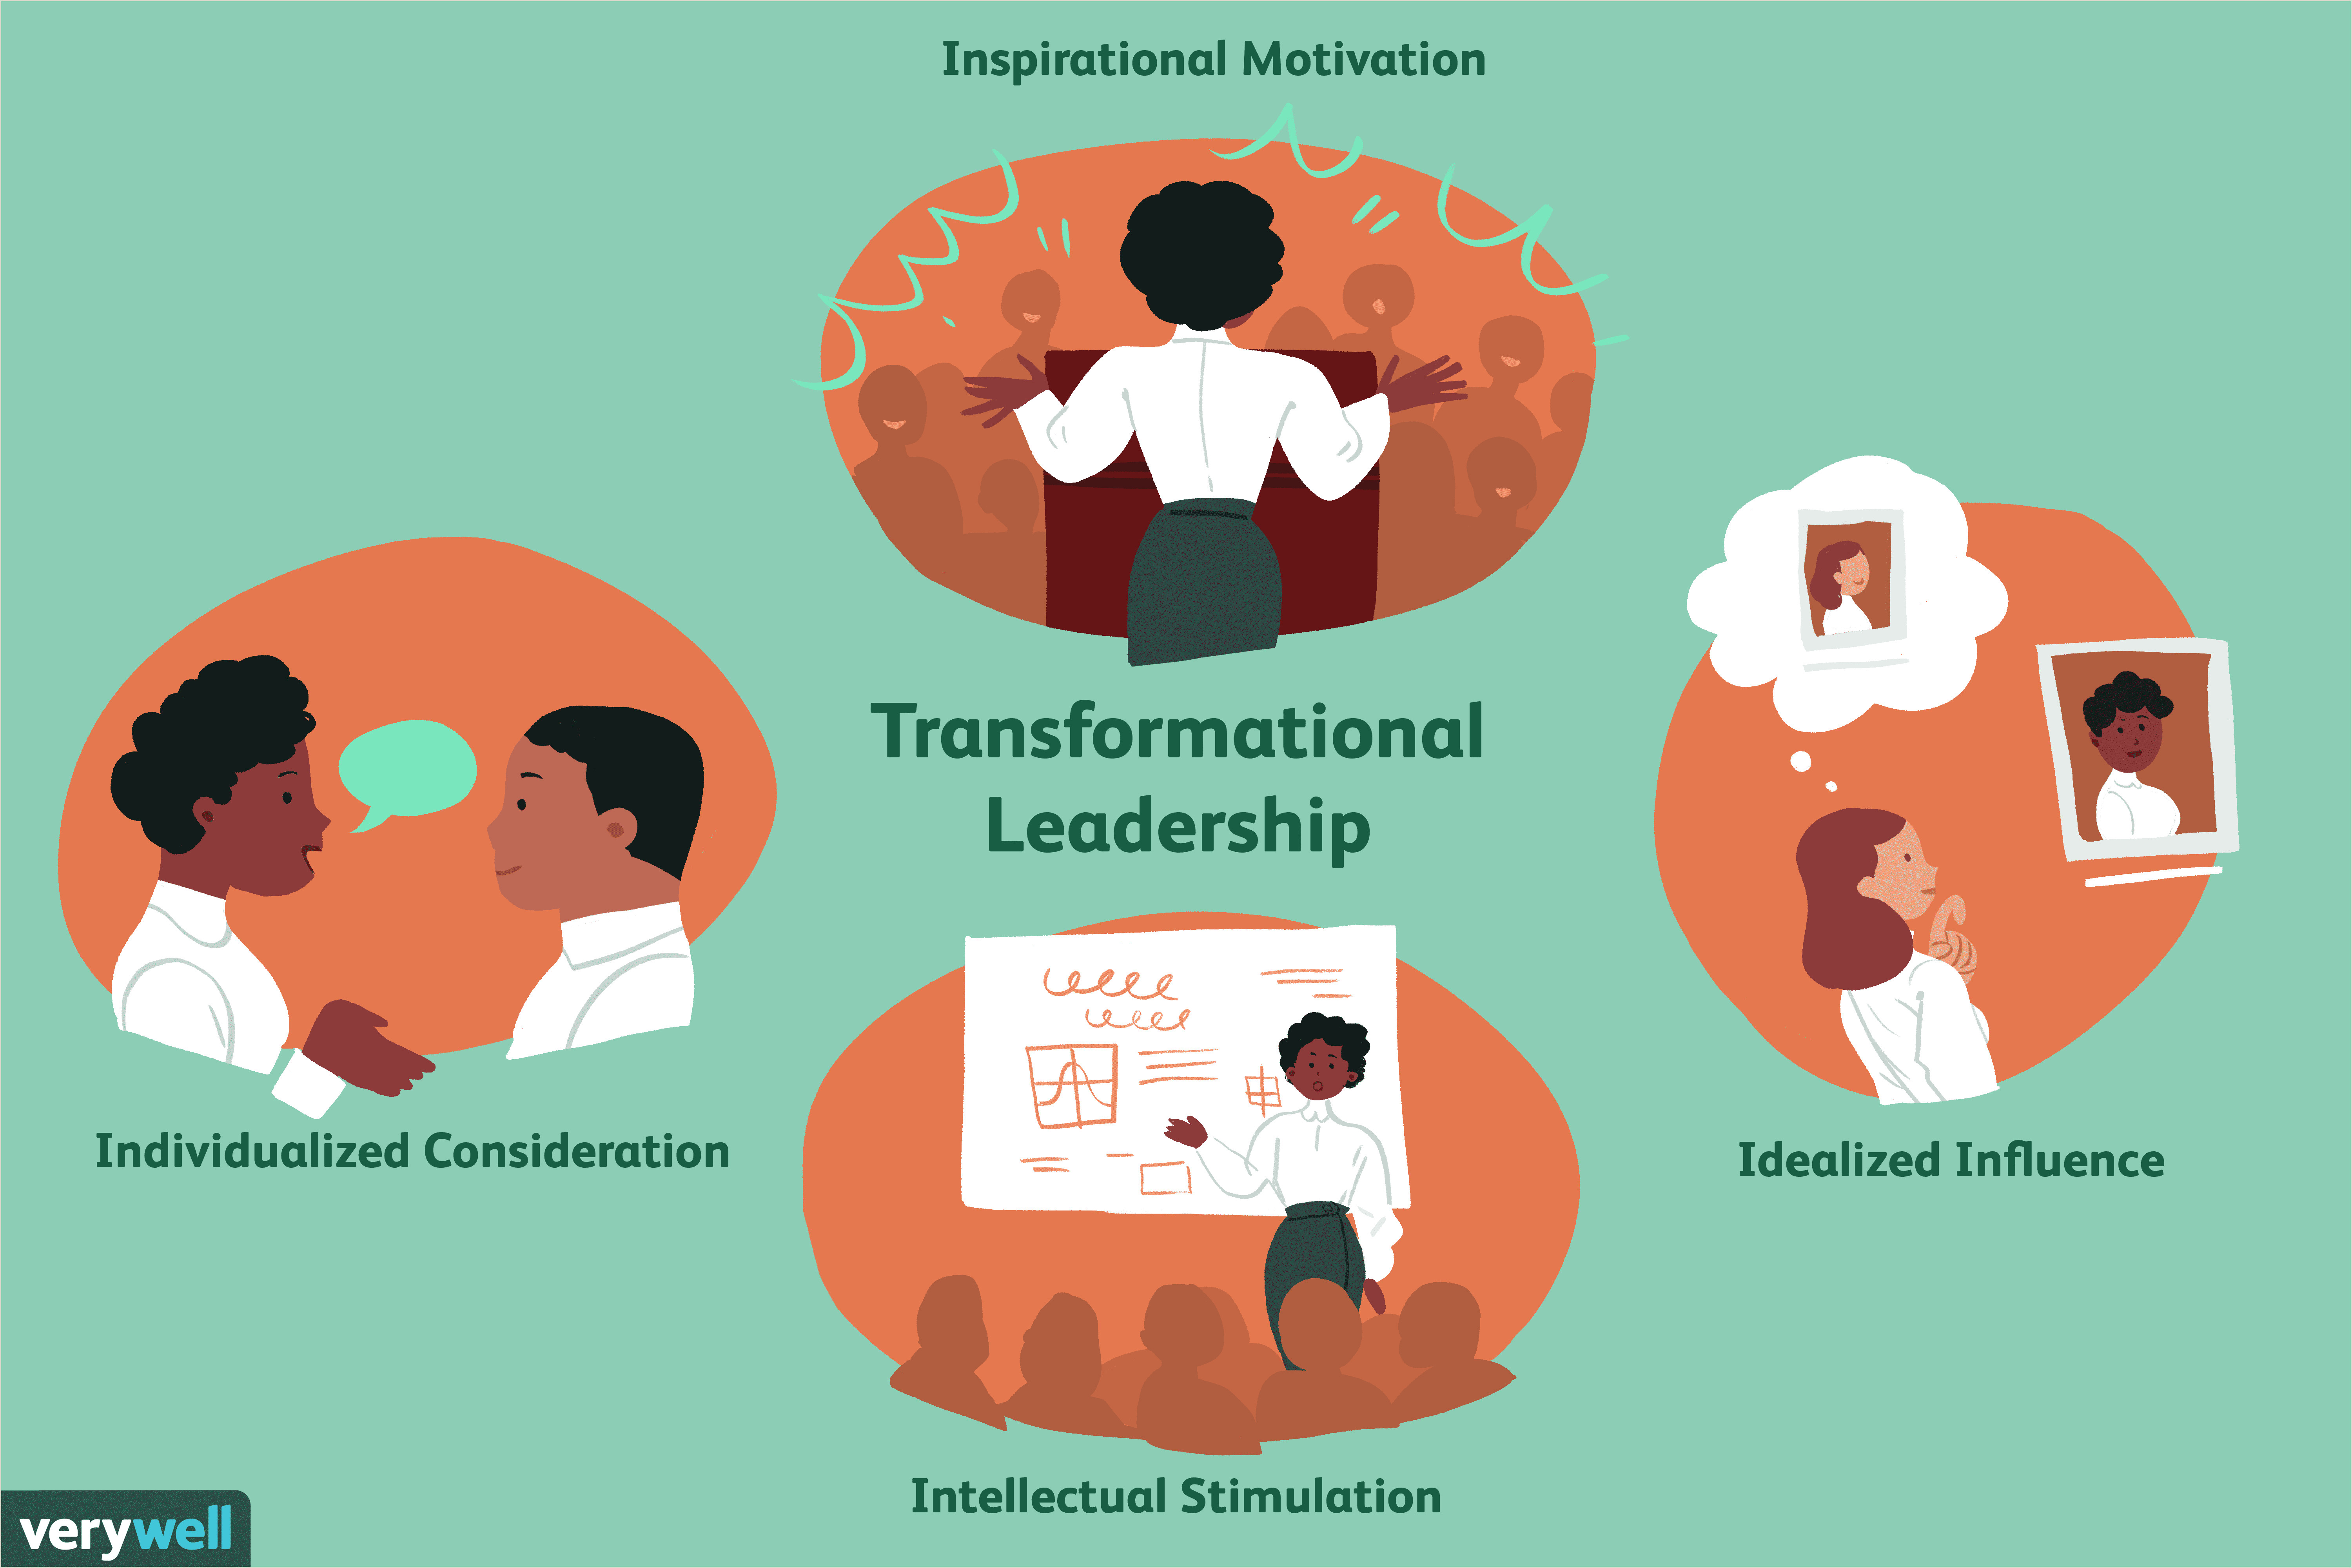 Transformational Leadership Inspire and Motivate